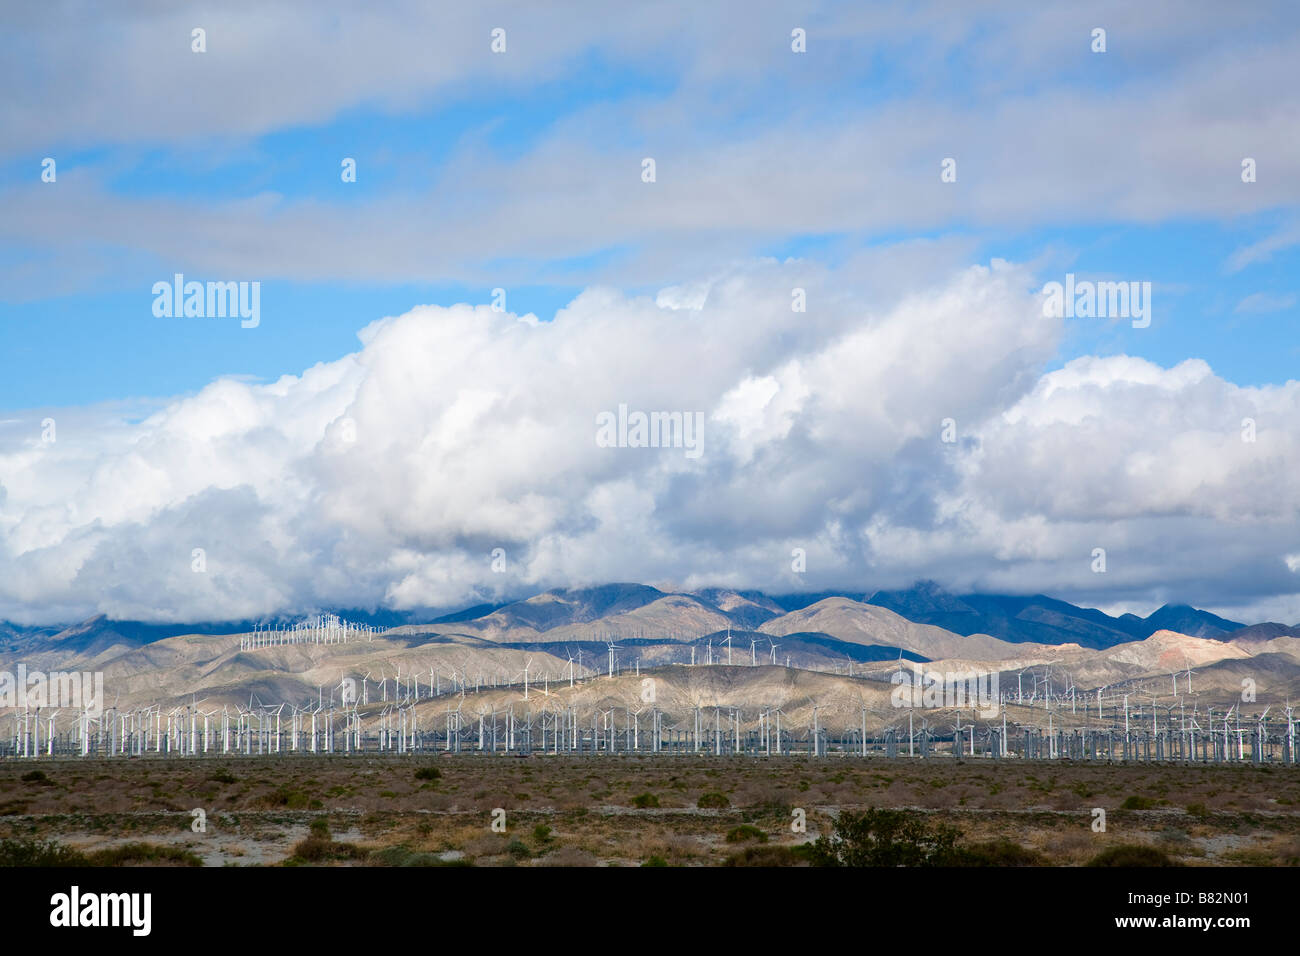 Dramatic sky with large fields of wind turbines outside of Palm Springs California - Stock Image